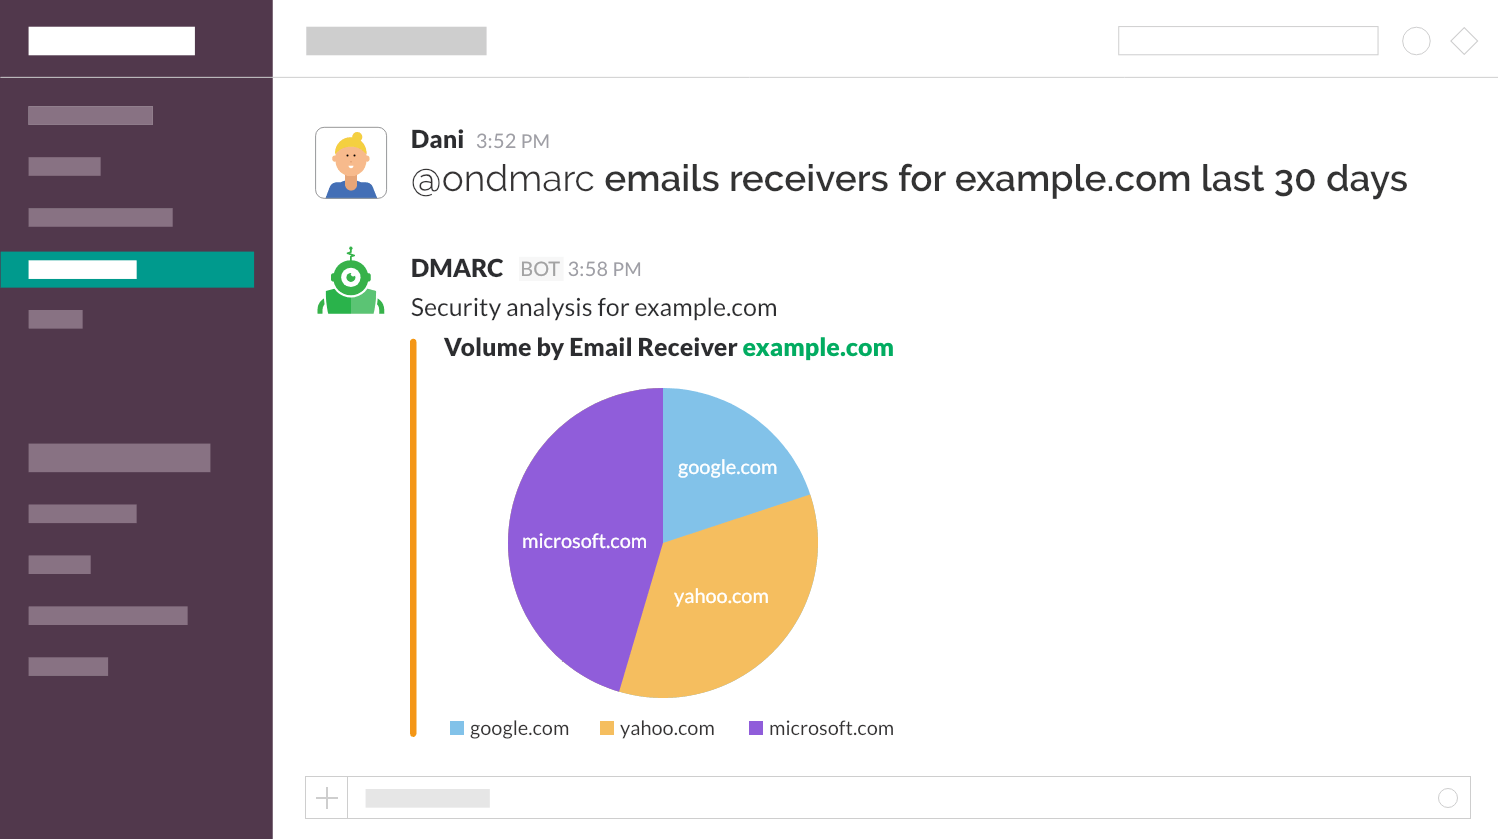 app-email-receivers